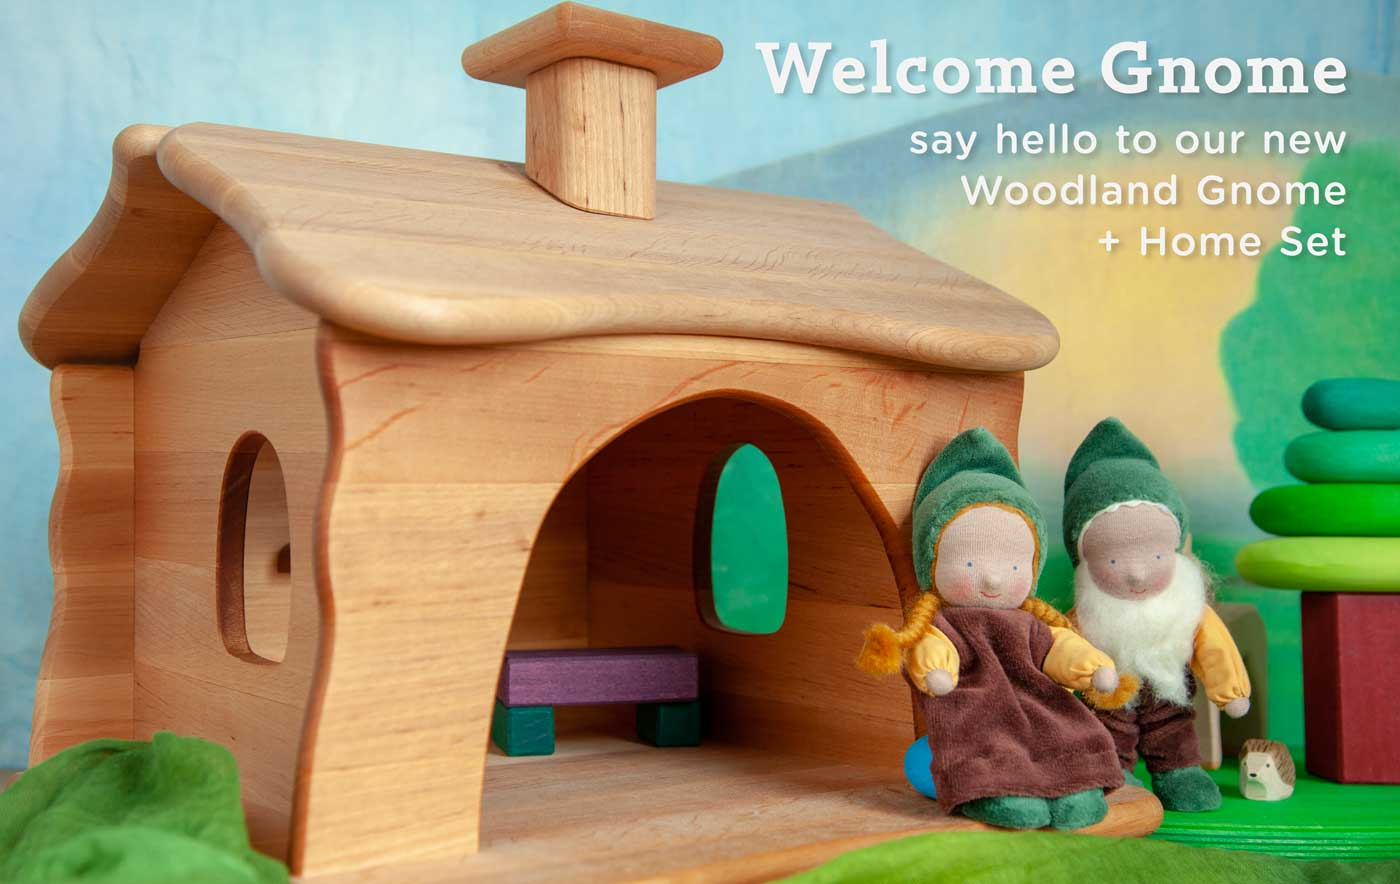 Welcome Gnome: Say Hello to our New Woodland Gnome + Home Set